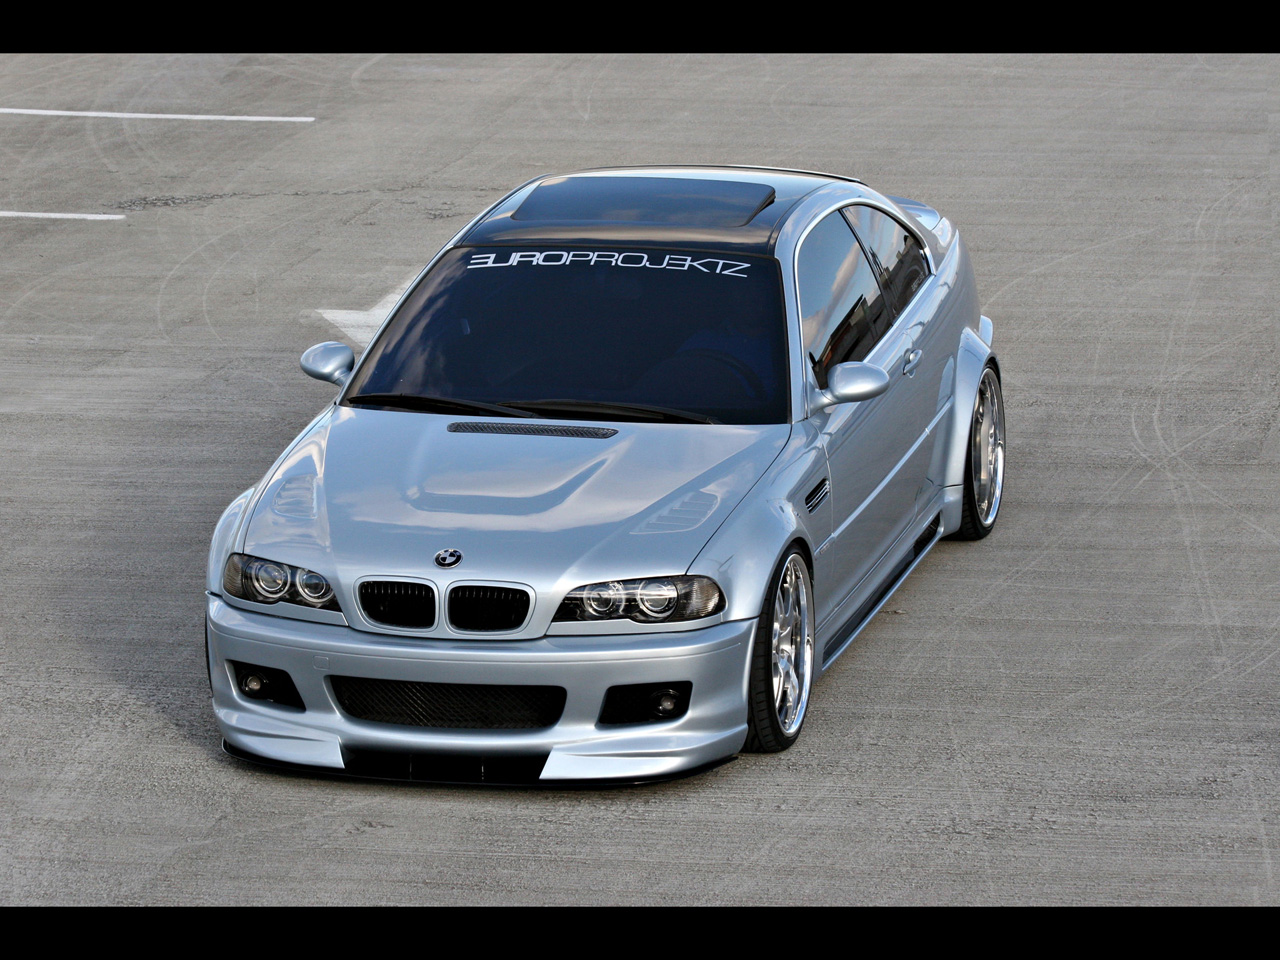 2003 BMW 325Ci Europrojektz ///OSS - Front Angle Top - 1280x960 - Wallpaper